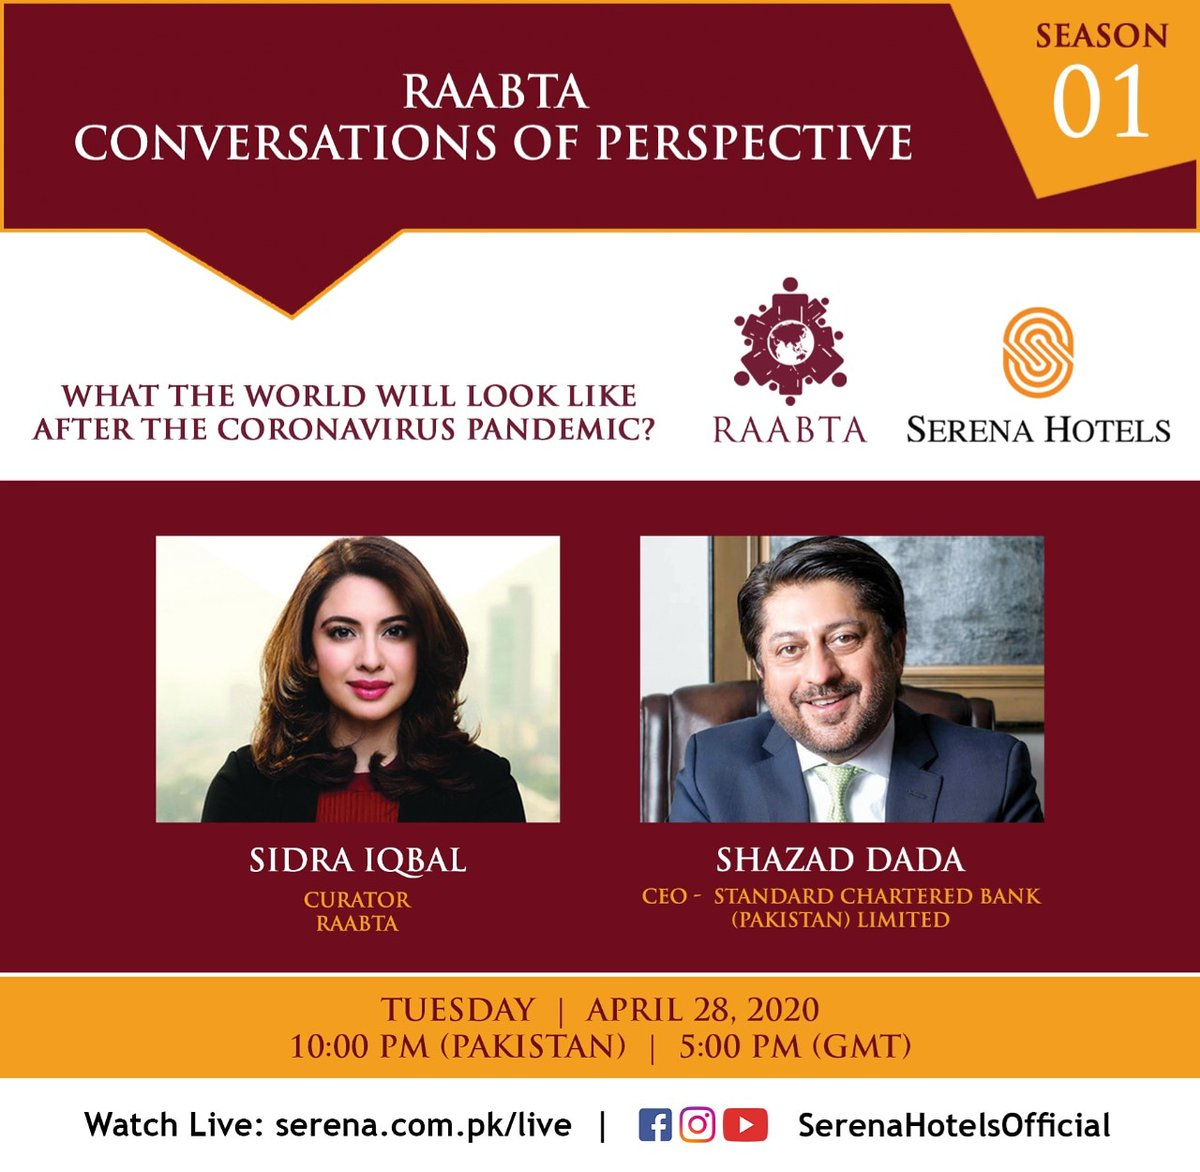 What the World will look like after the Coronavirus Pandemic? Live with Shazad Dada, CEO Standard Chartered Bank (Pakistan) Ltd  Watch Live tonight 28th April) at 10:00 pm PST   5:00 pm (GMT) on https://t.co/PkCGvgRUv4 or Facebook/YouTube/Instagram  @SerenaHotelsOfficial. https://t.co/KVo3h4kc5z